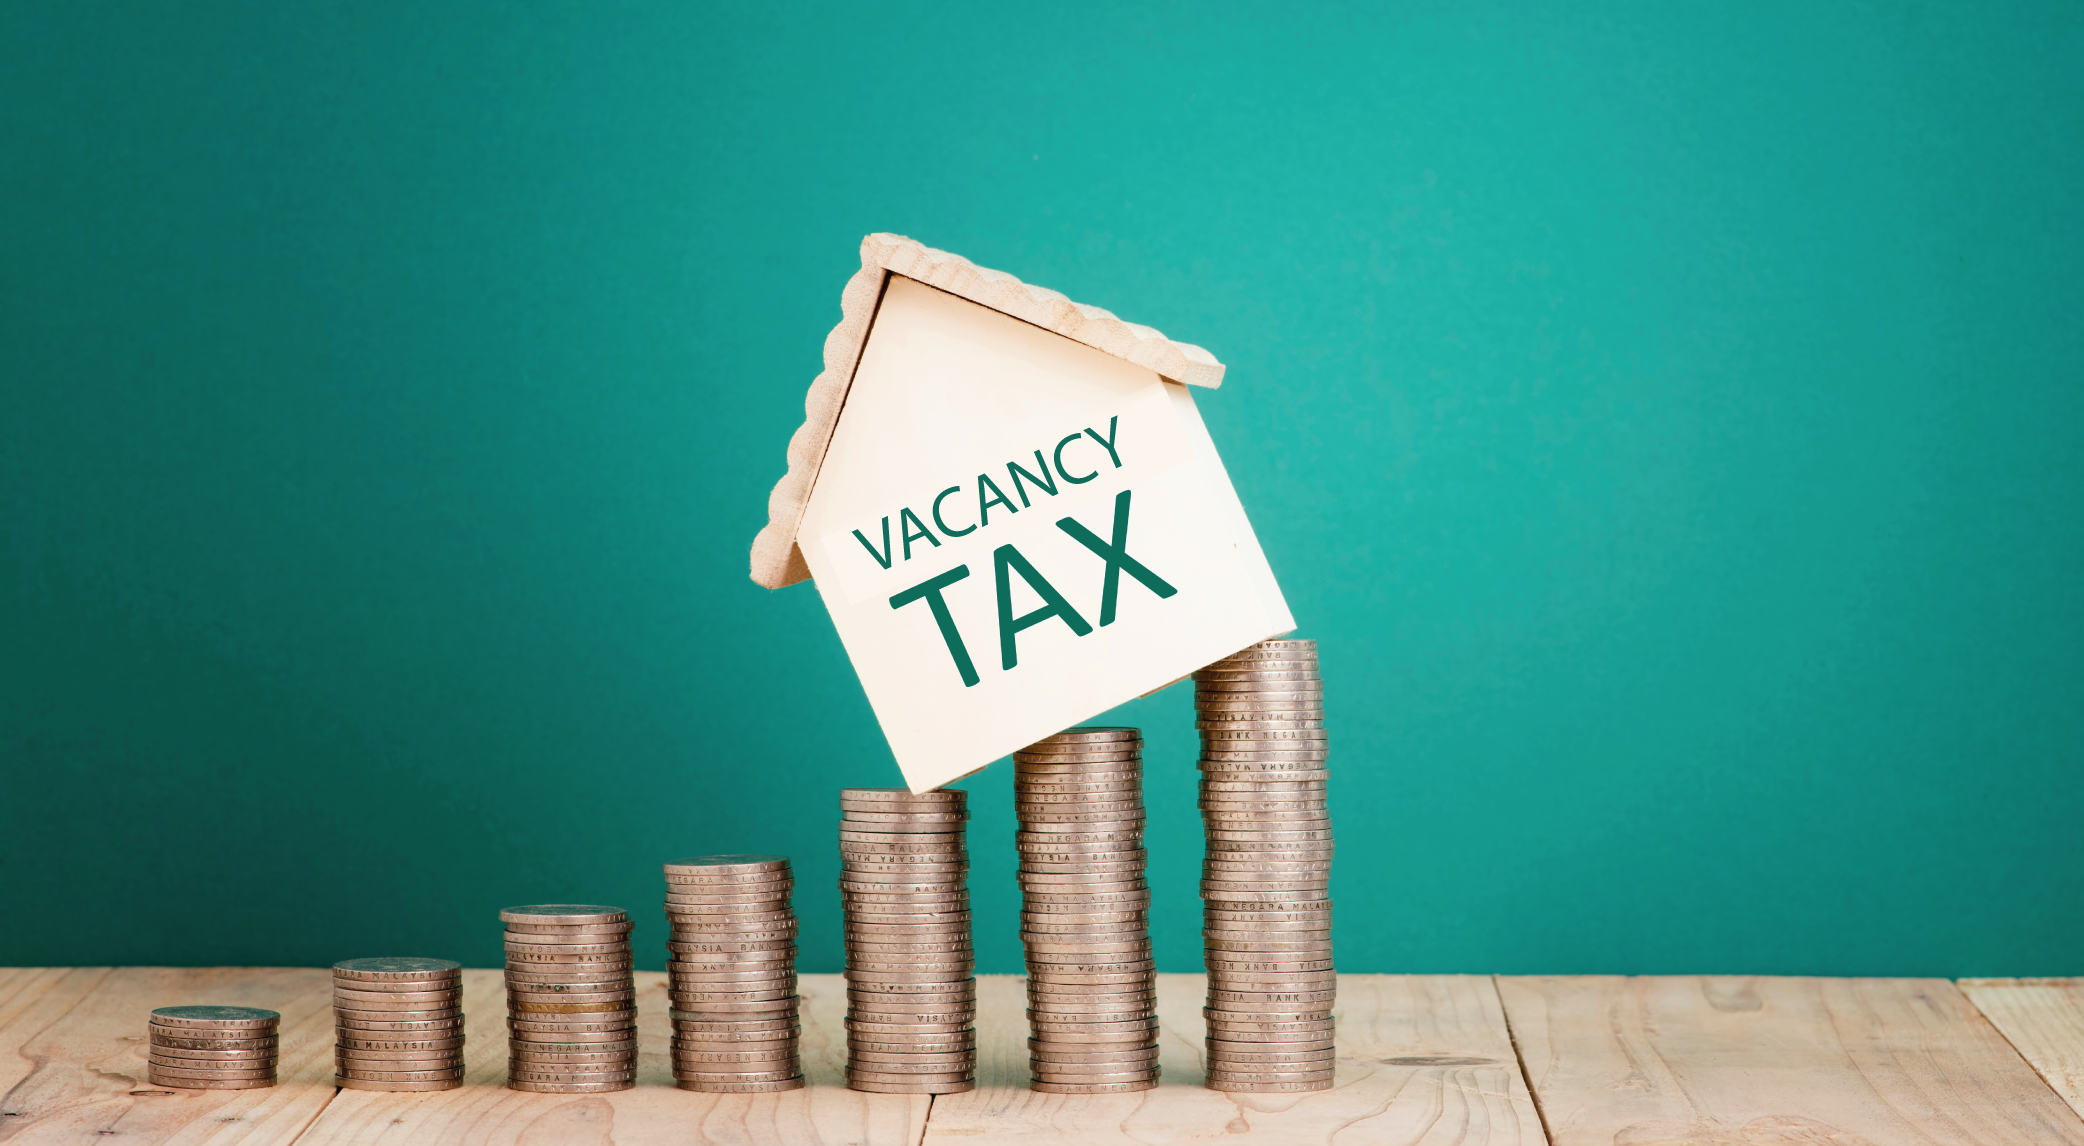 Andrey Pavlov: Vacancy Tax A Good Idea That's Been Badly Implemented